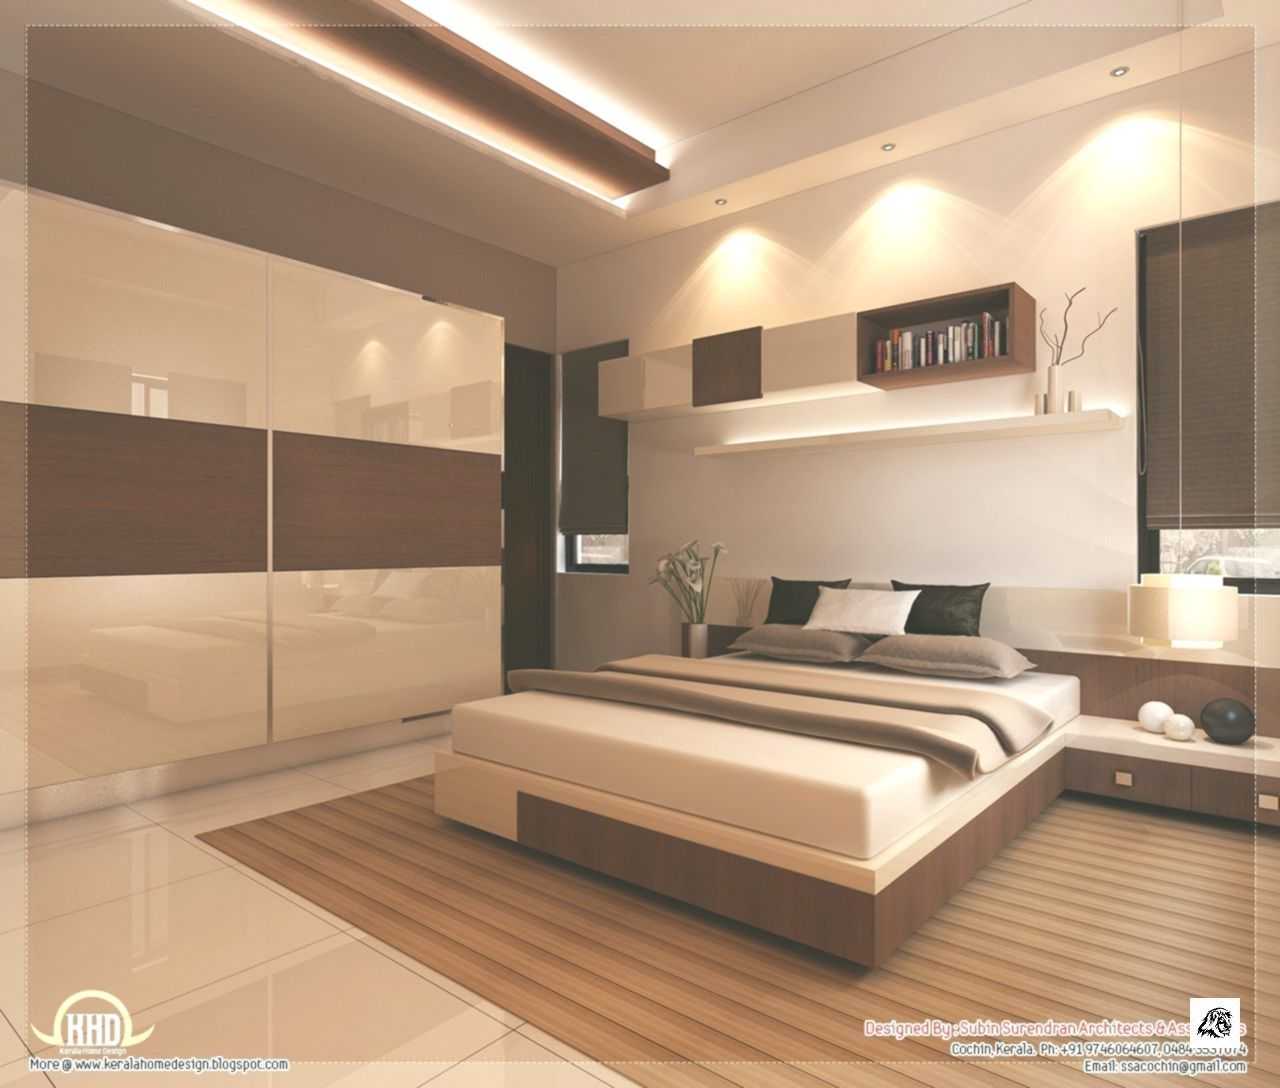 Bedroom Designs India Low Cost More Picture Bedroom Designs India